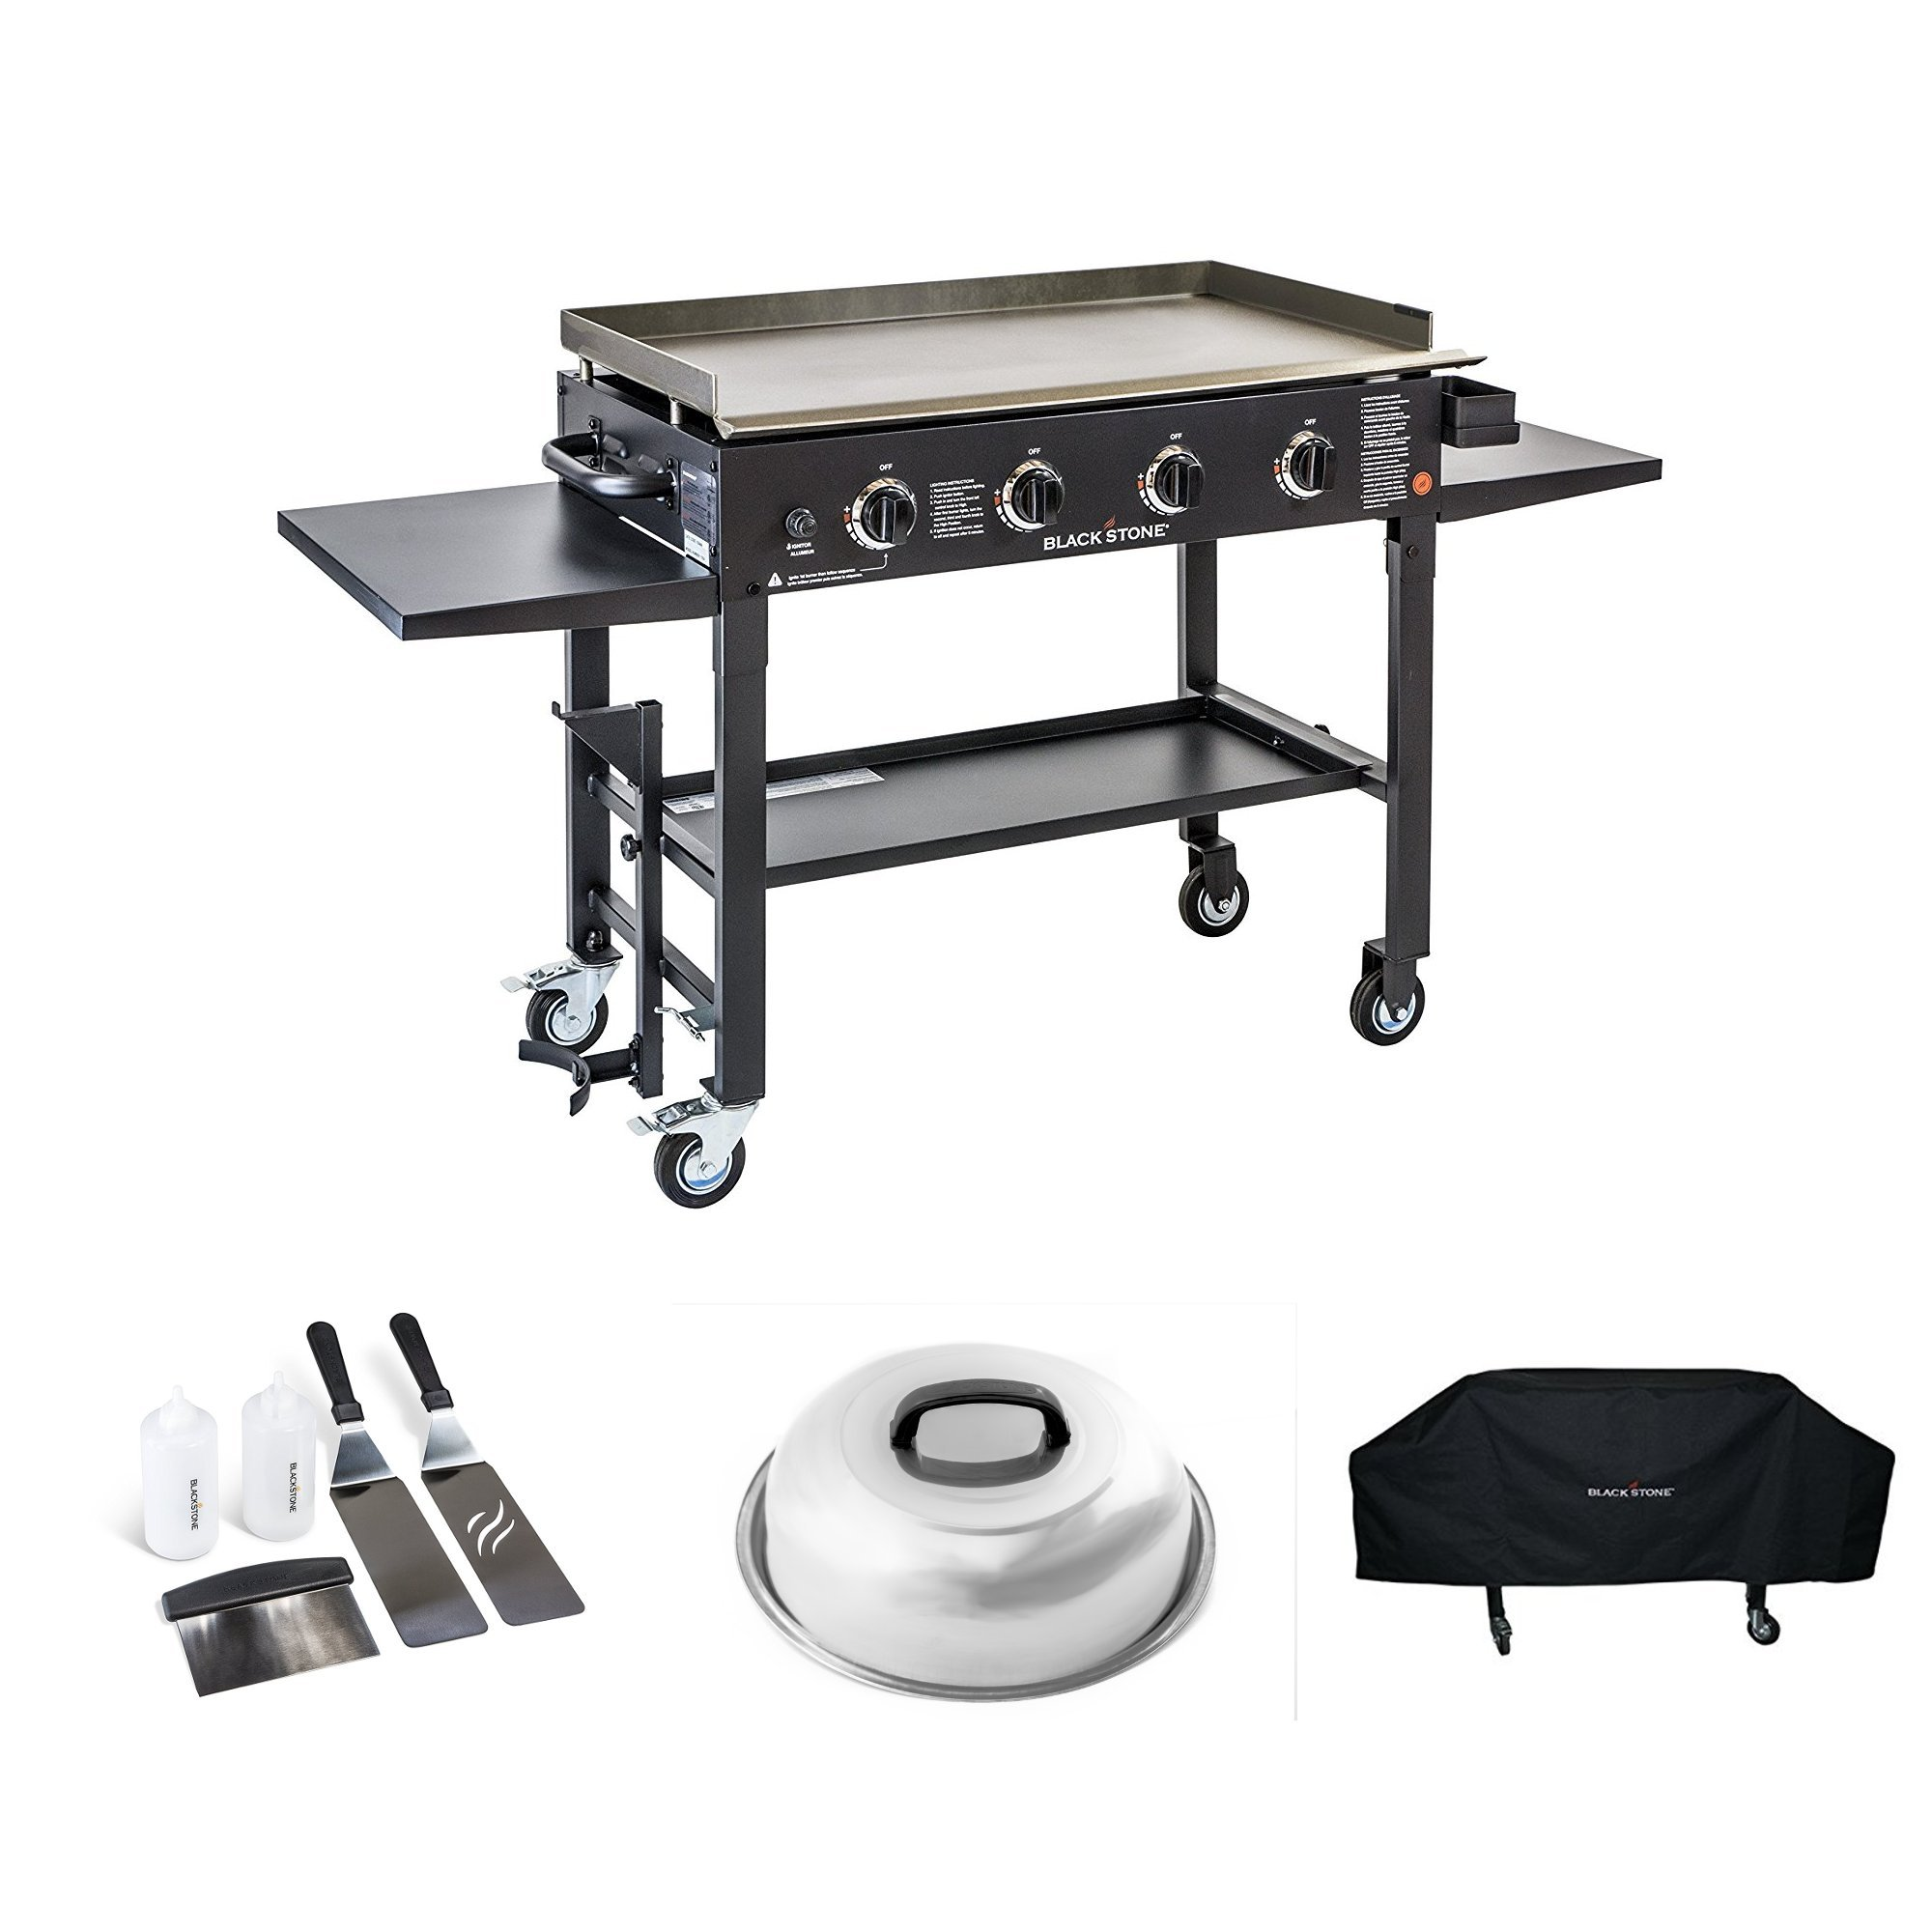 Blackstone 36 inch Outdoor Flat Top Gas Grill Griddle Station Starter Bundle with 4-burner Grill, Cover, Accessory Kit and Melting Dome